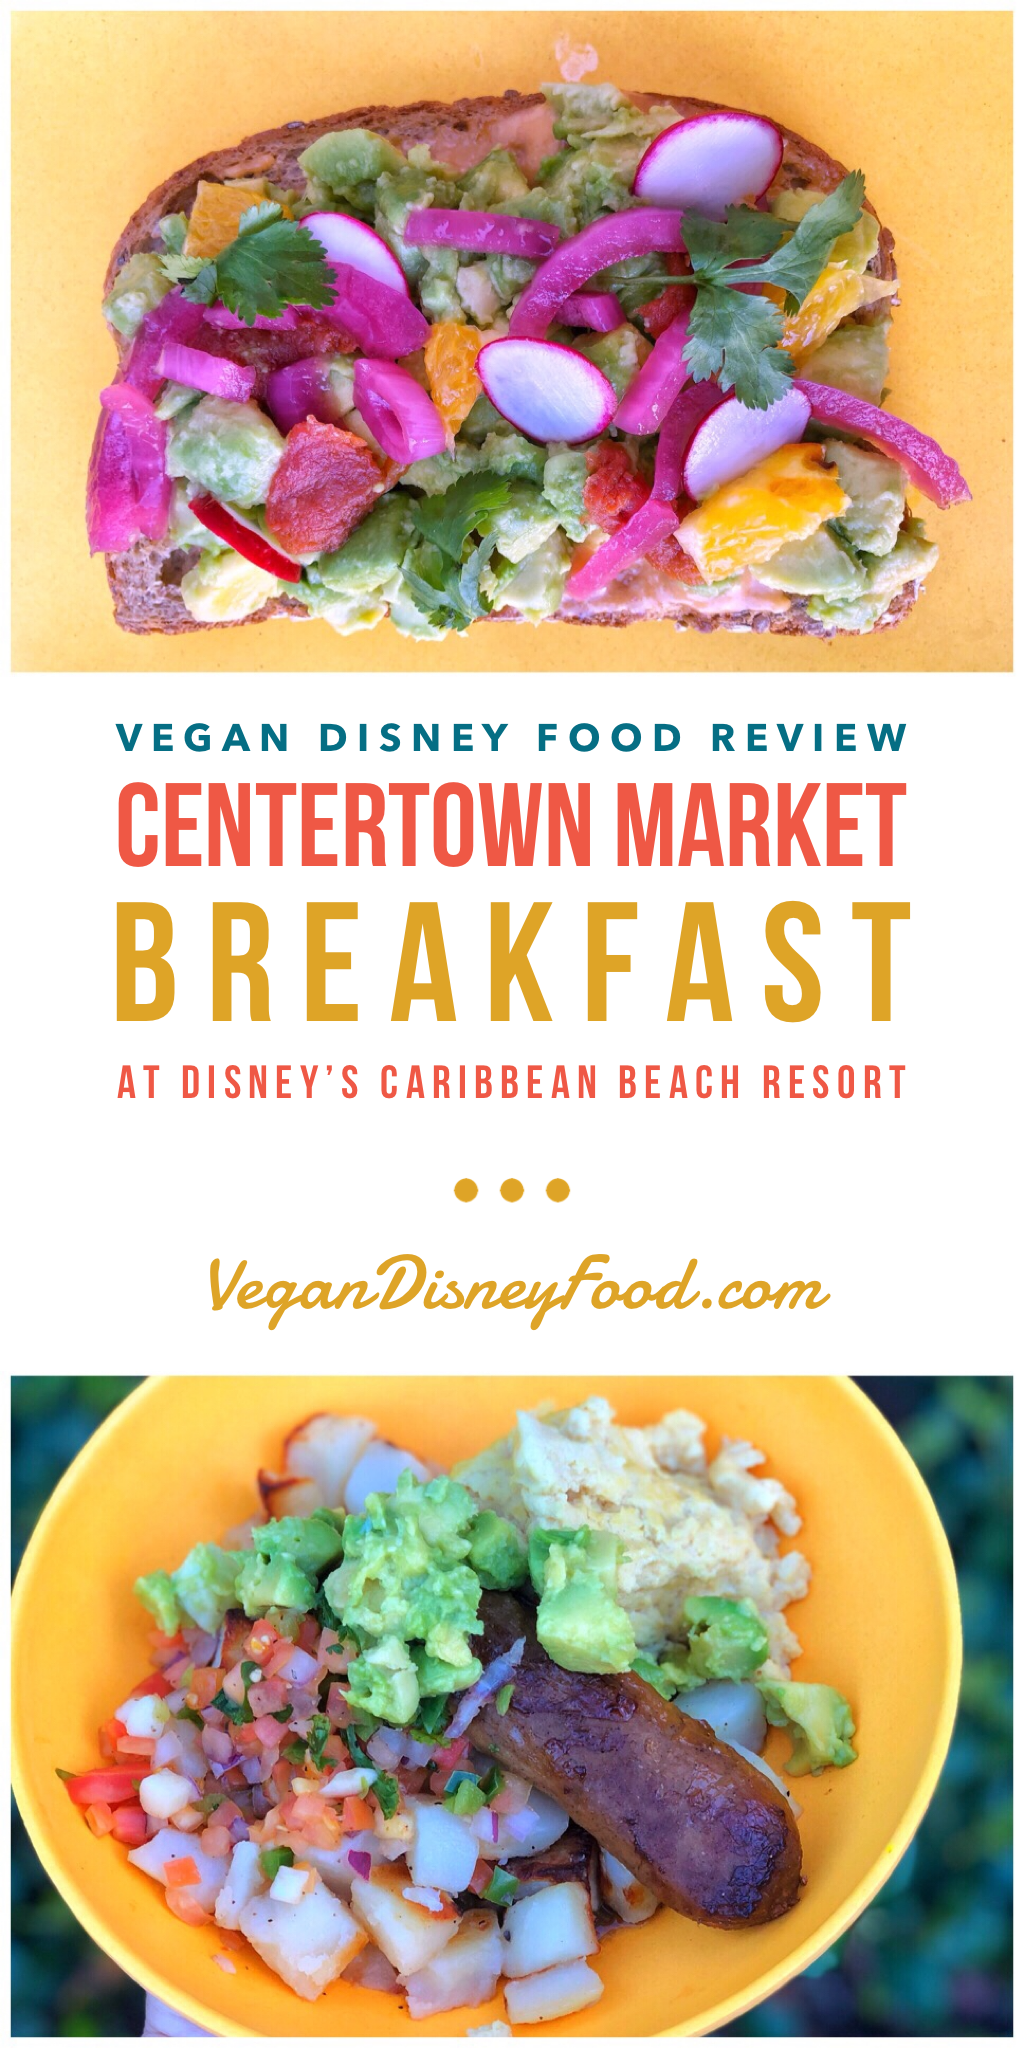 Vegan Disney Food Review: Centertown Market Breakfast at Disney's Caribbean Beach Resort